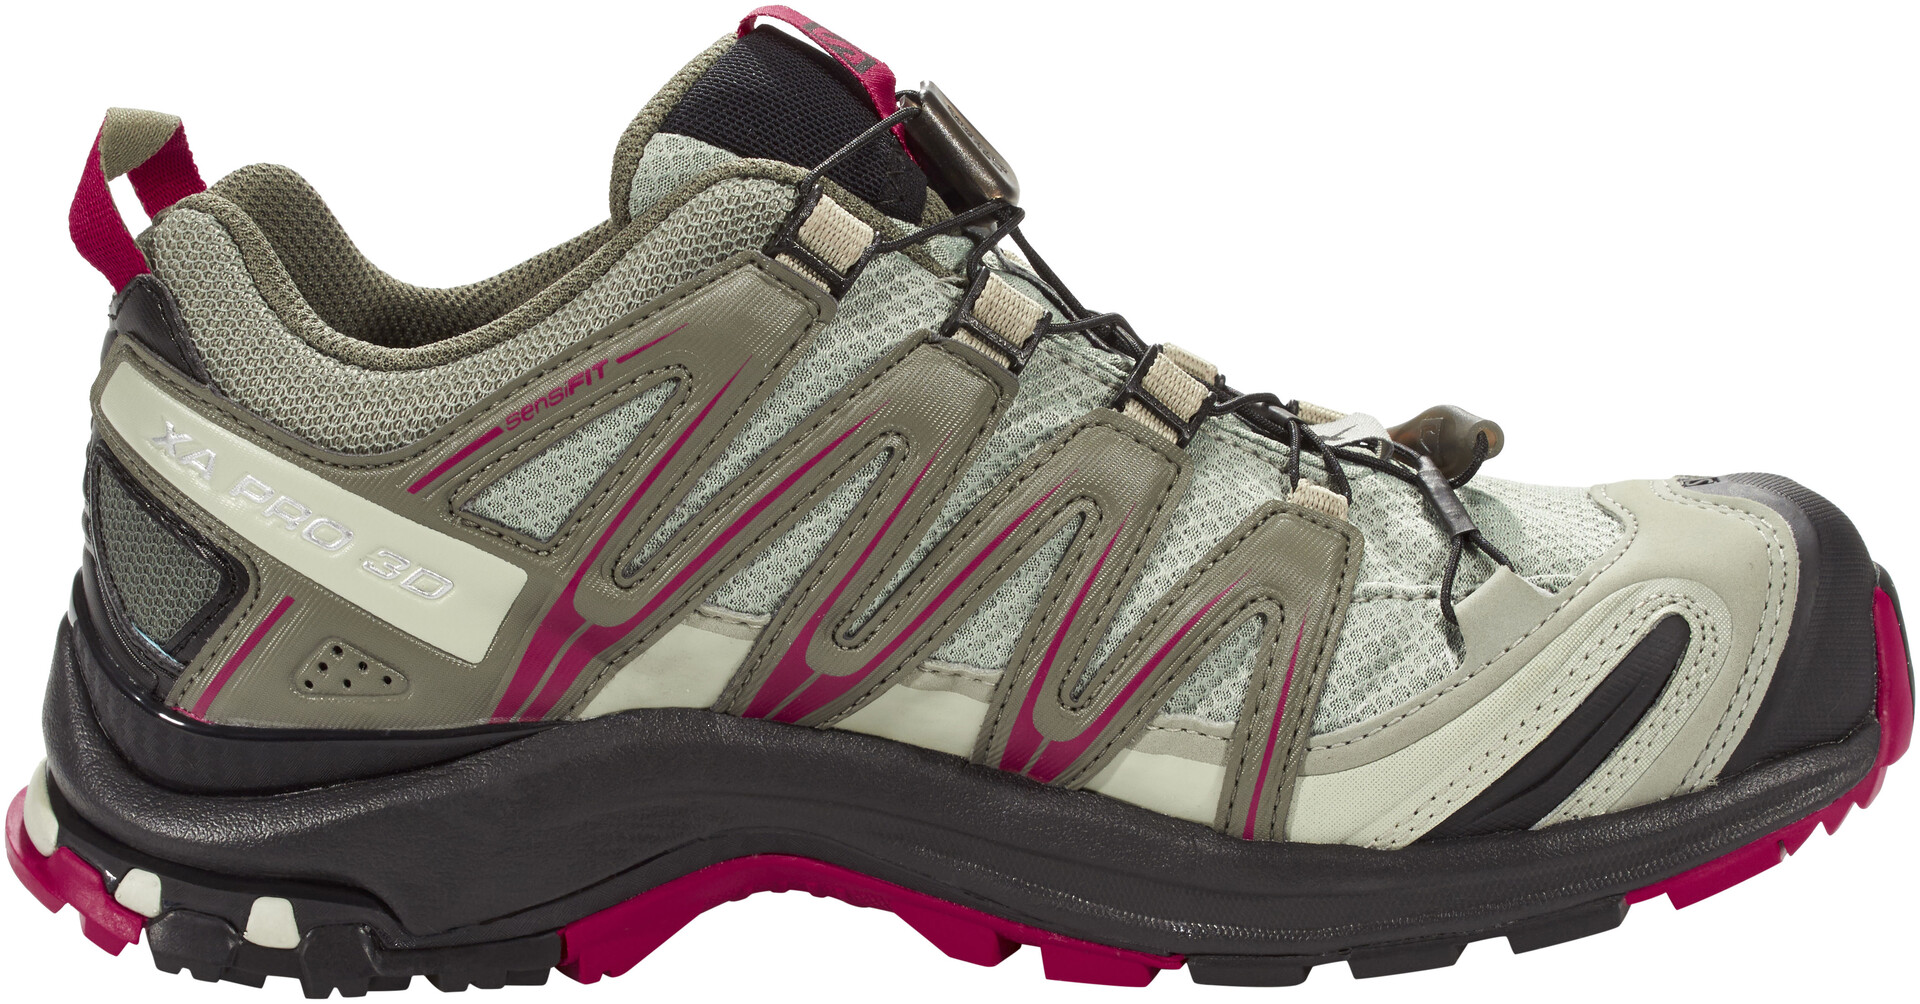 Xa Pro Gtx At Salomon Bikester Women uk Shoes Grey co Running 3d SGUpqVMz